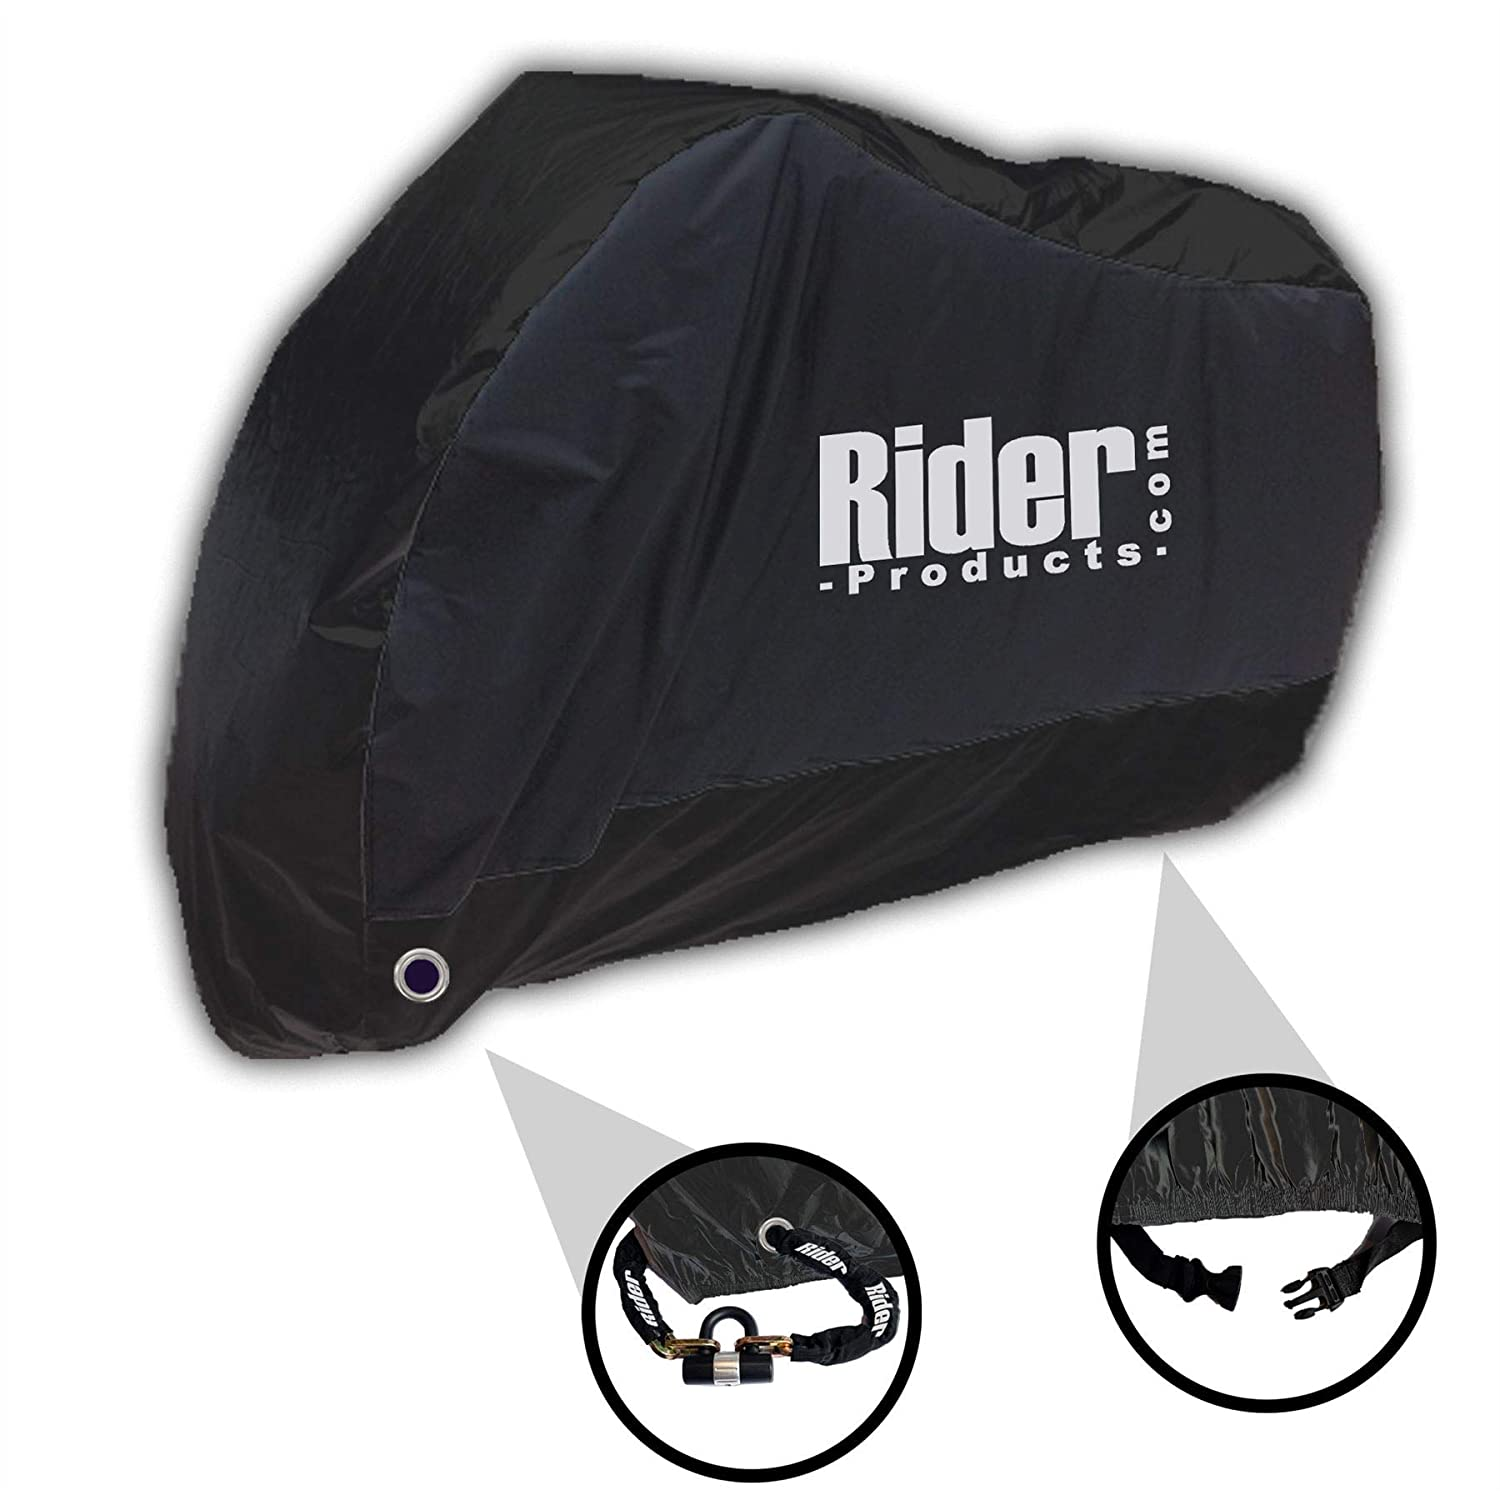 Wing Mirrors World YAMAHA NMAX 125 Rider Products Waterproof Motorcycle Cover Motorbike Black